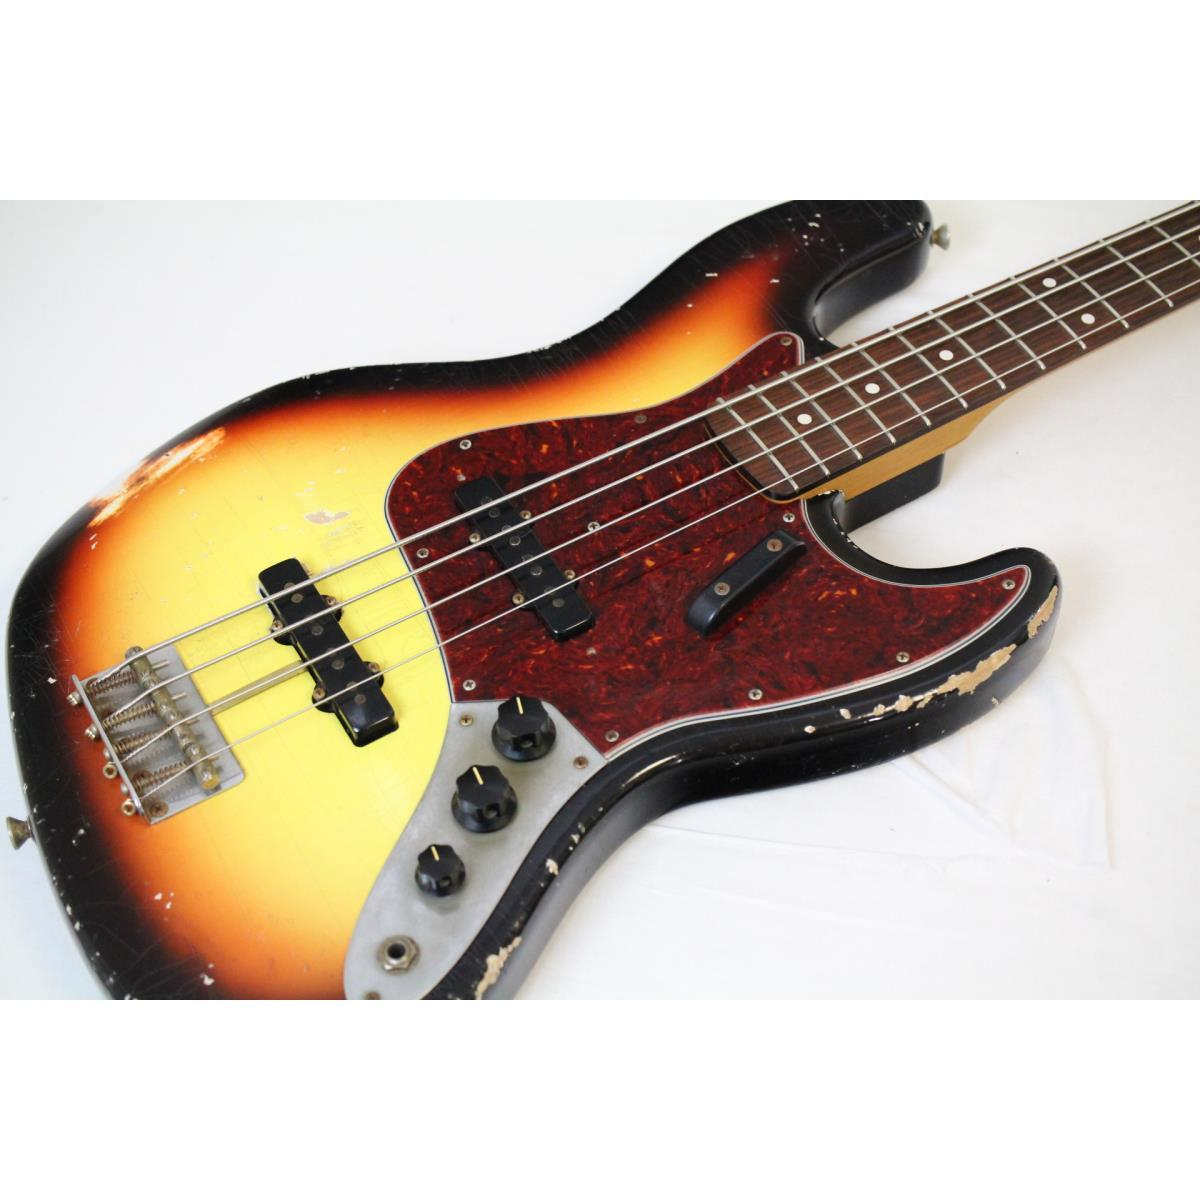 RS GUITARWORKS OLDFRIEND 63 63 CONTOUR BASS RS【中古】, タカヤナギマチ:a3f8709b --- officewill.xsrv.jp